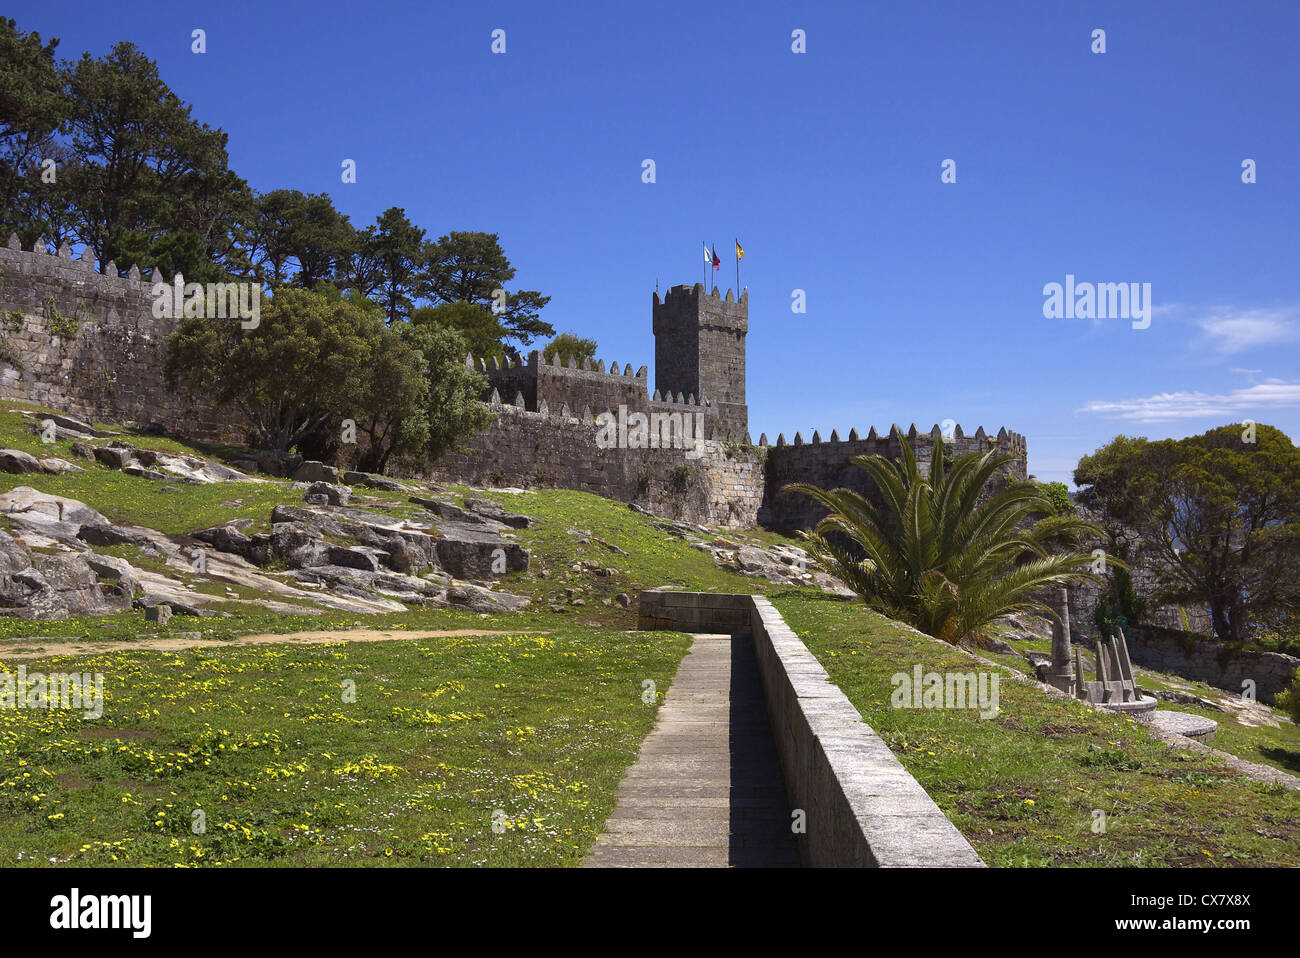 Le Castelo de Monterreal à Baiona en Galice, Espagne. Photo Stock